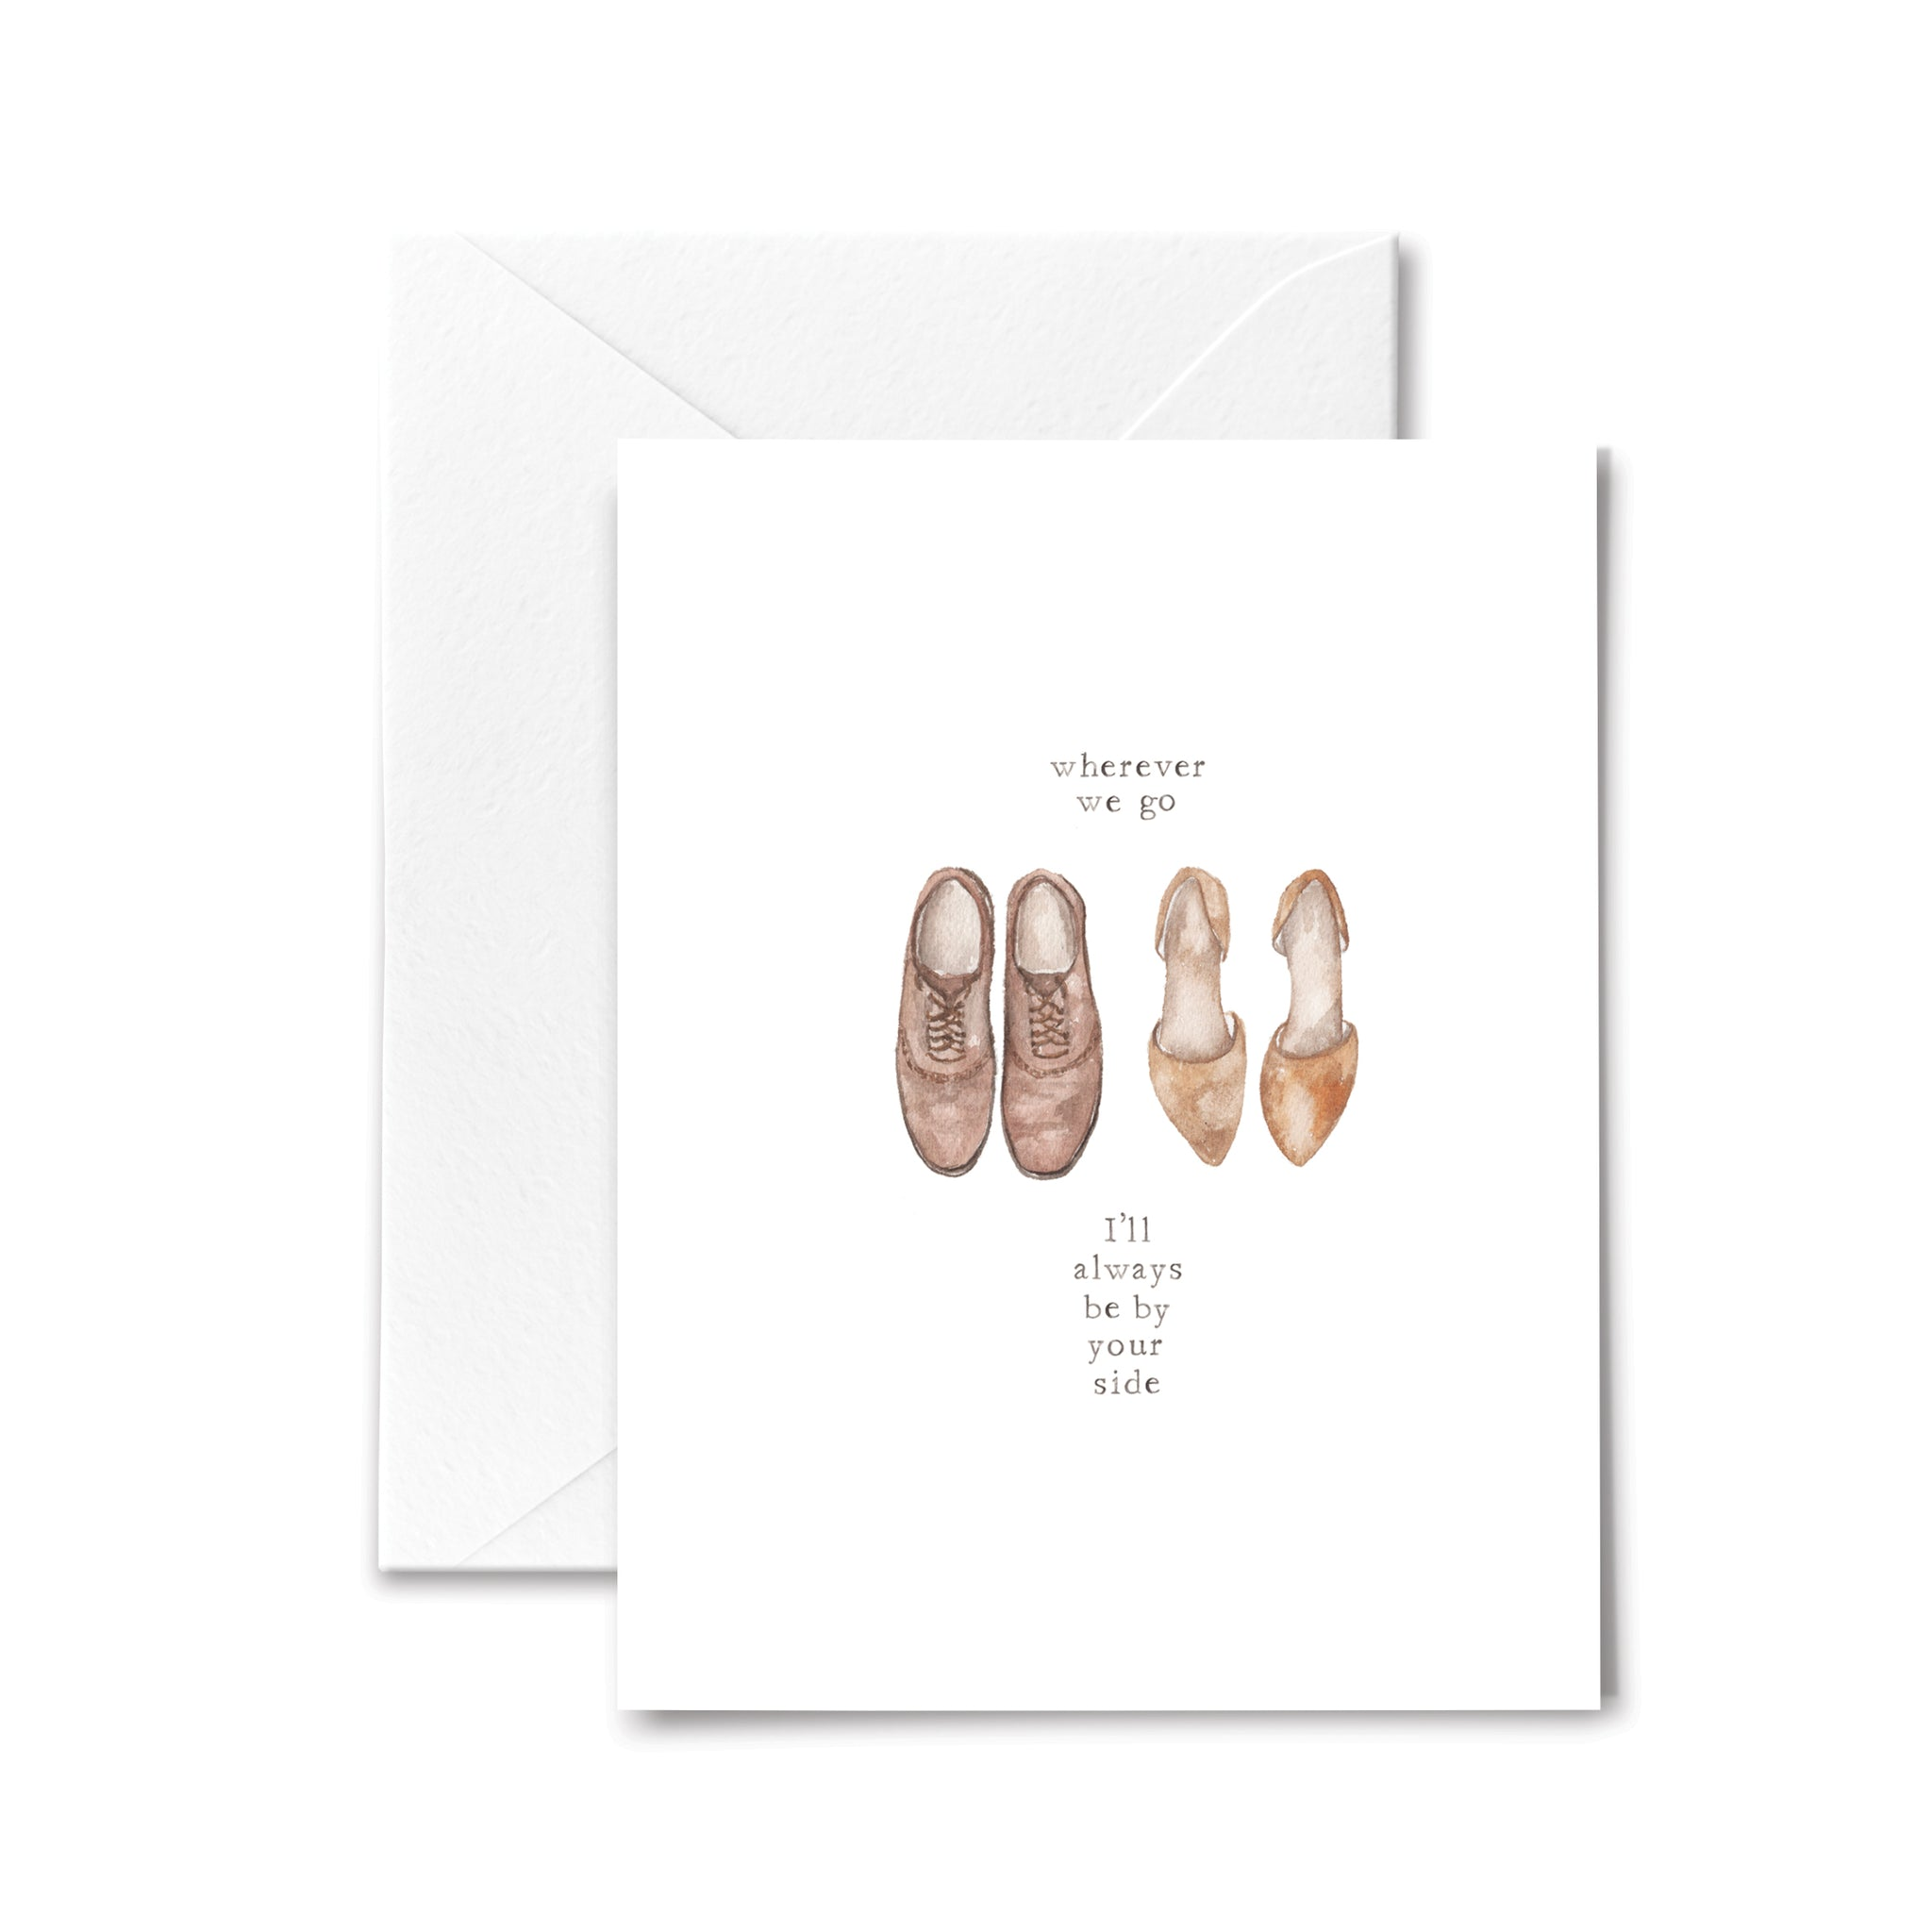 anniversary card love wedding watercolor illustration